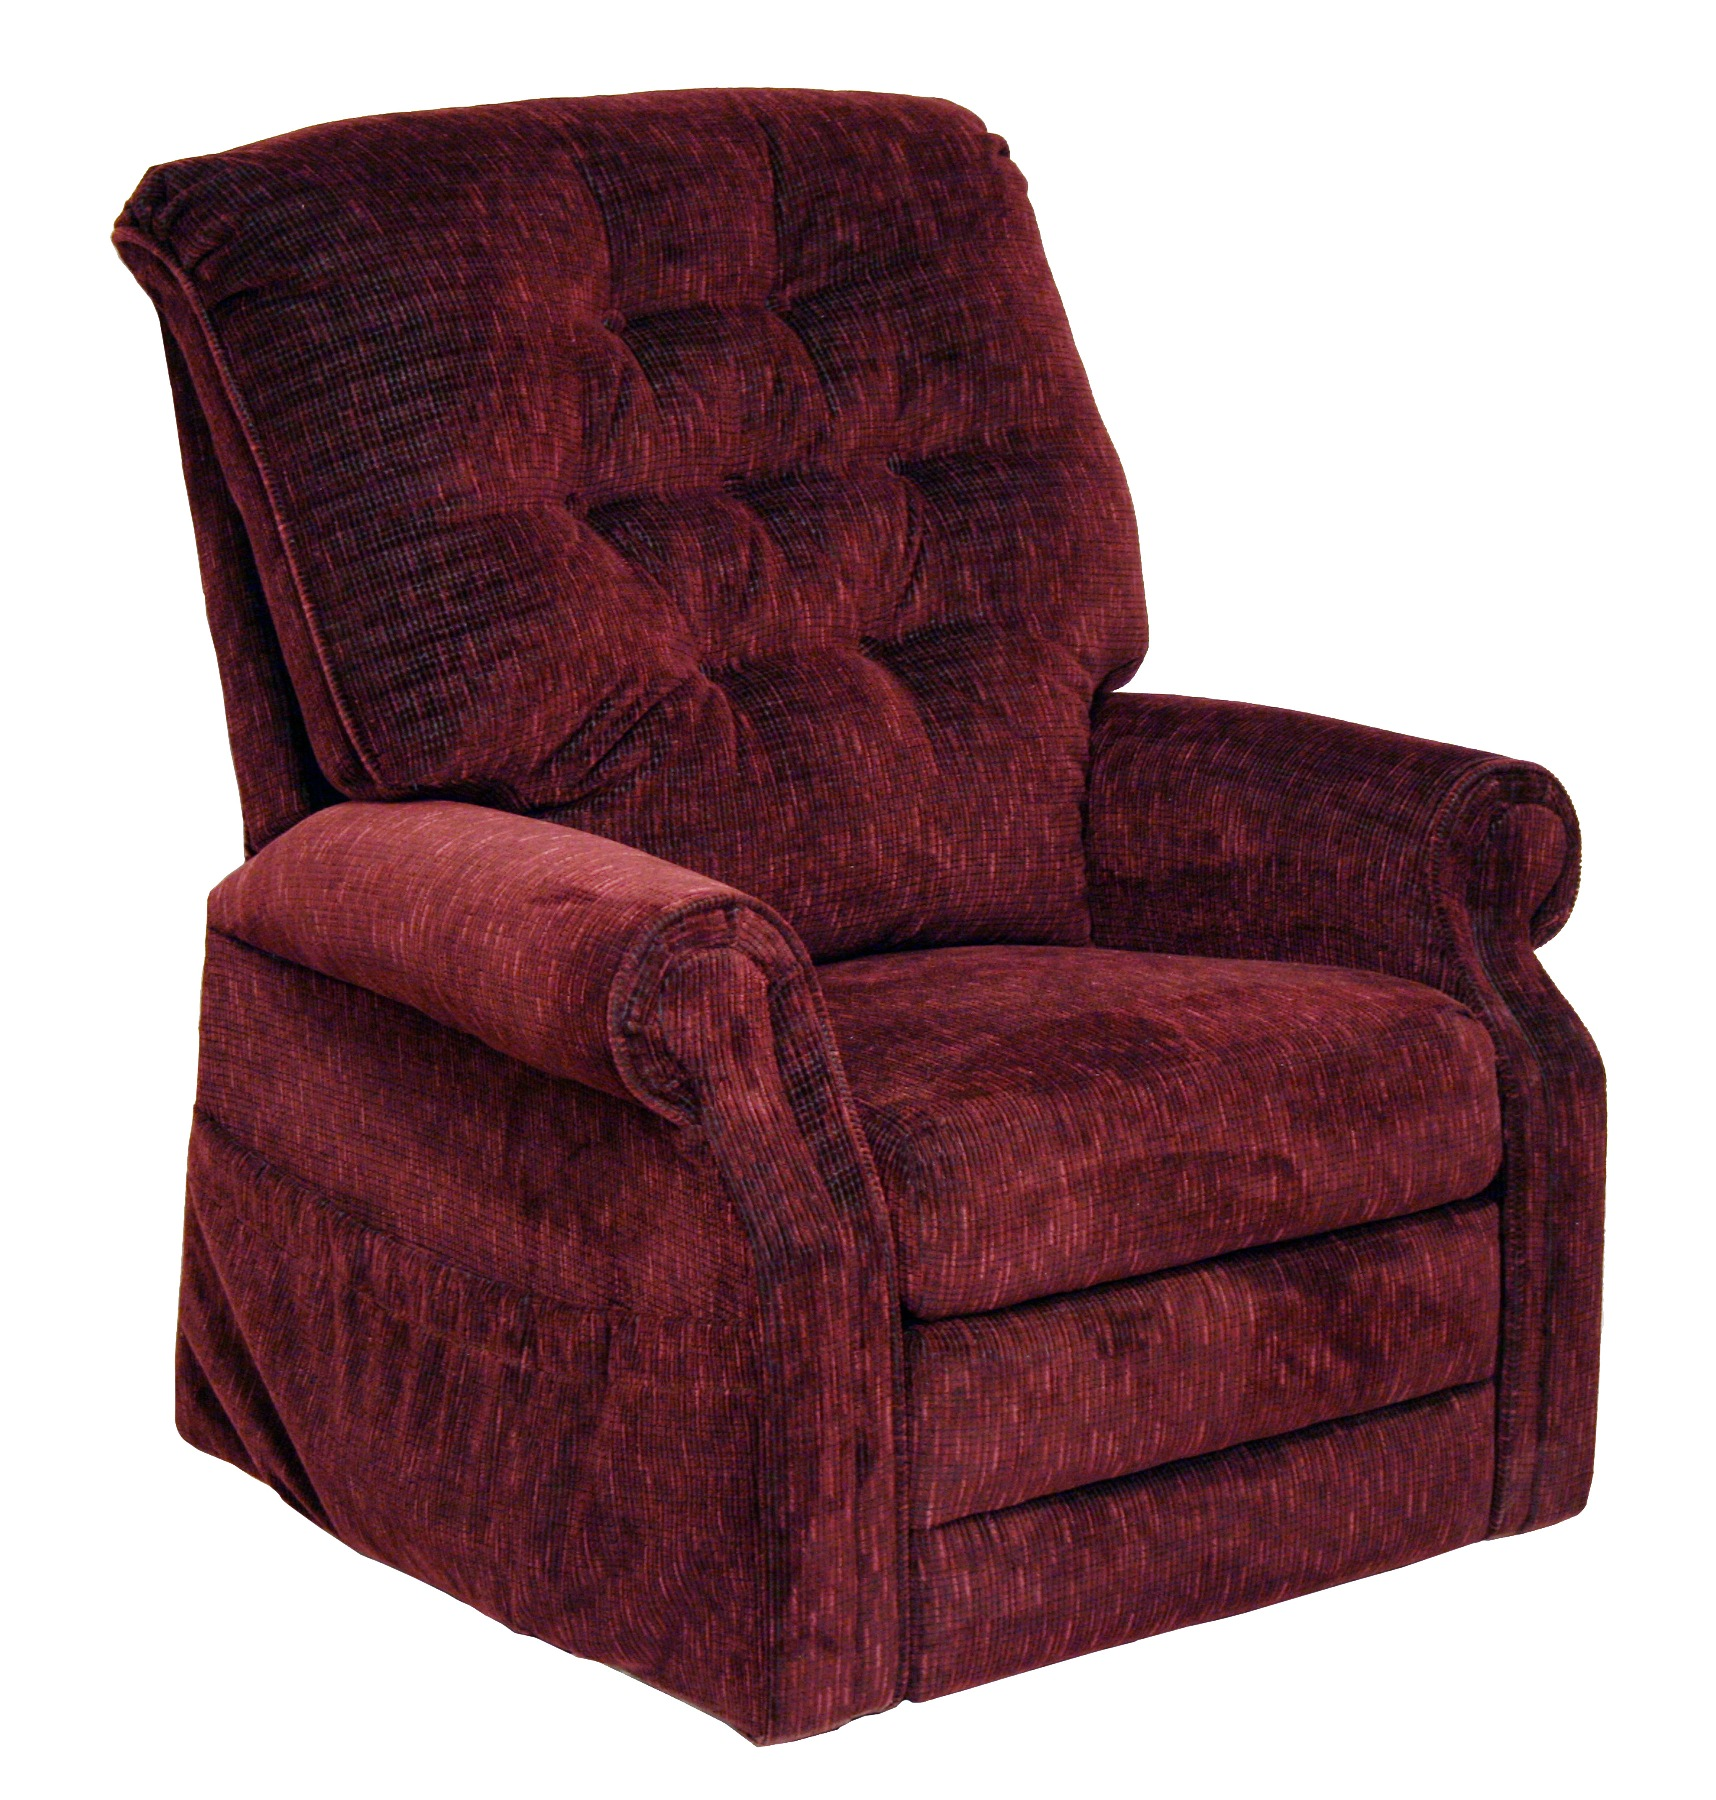 sears recliner chairs porch rocking made in usa catnapper patriot power lift vino